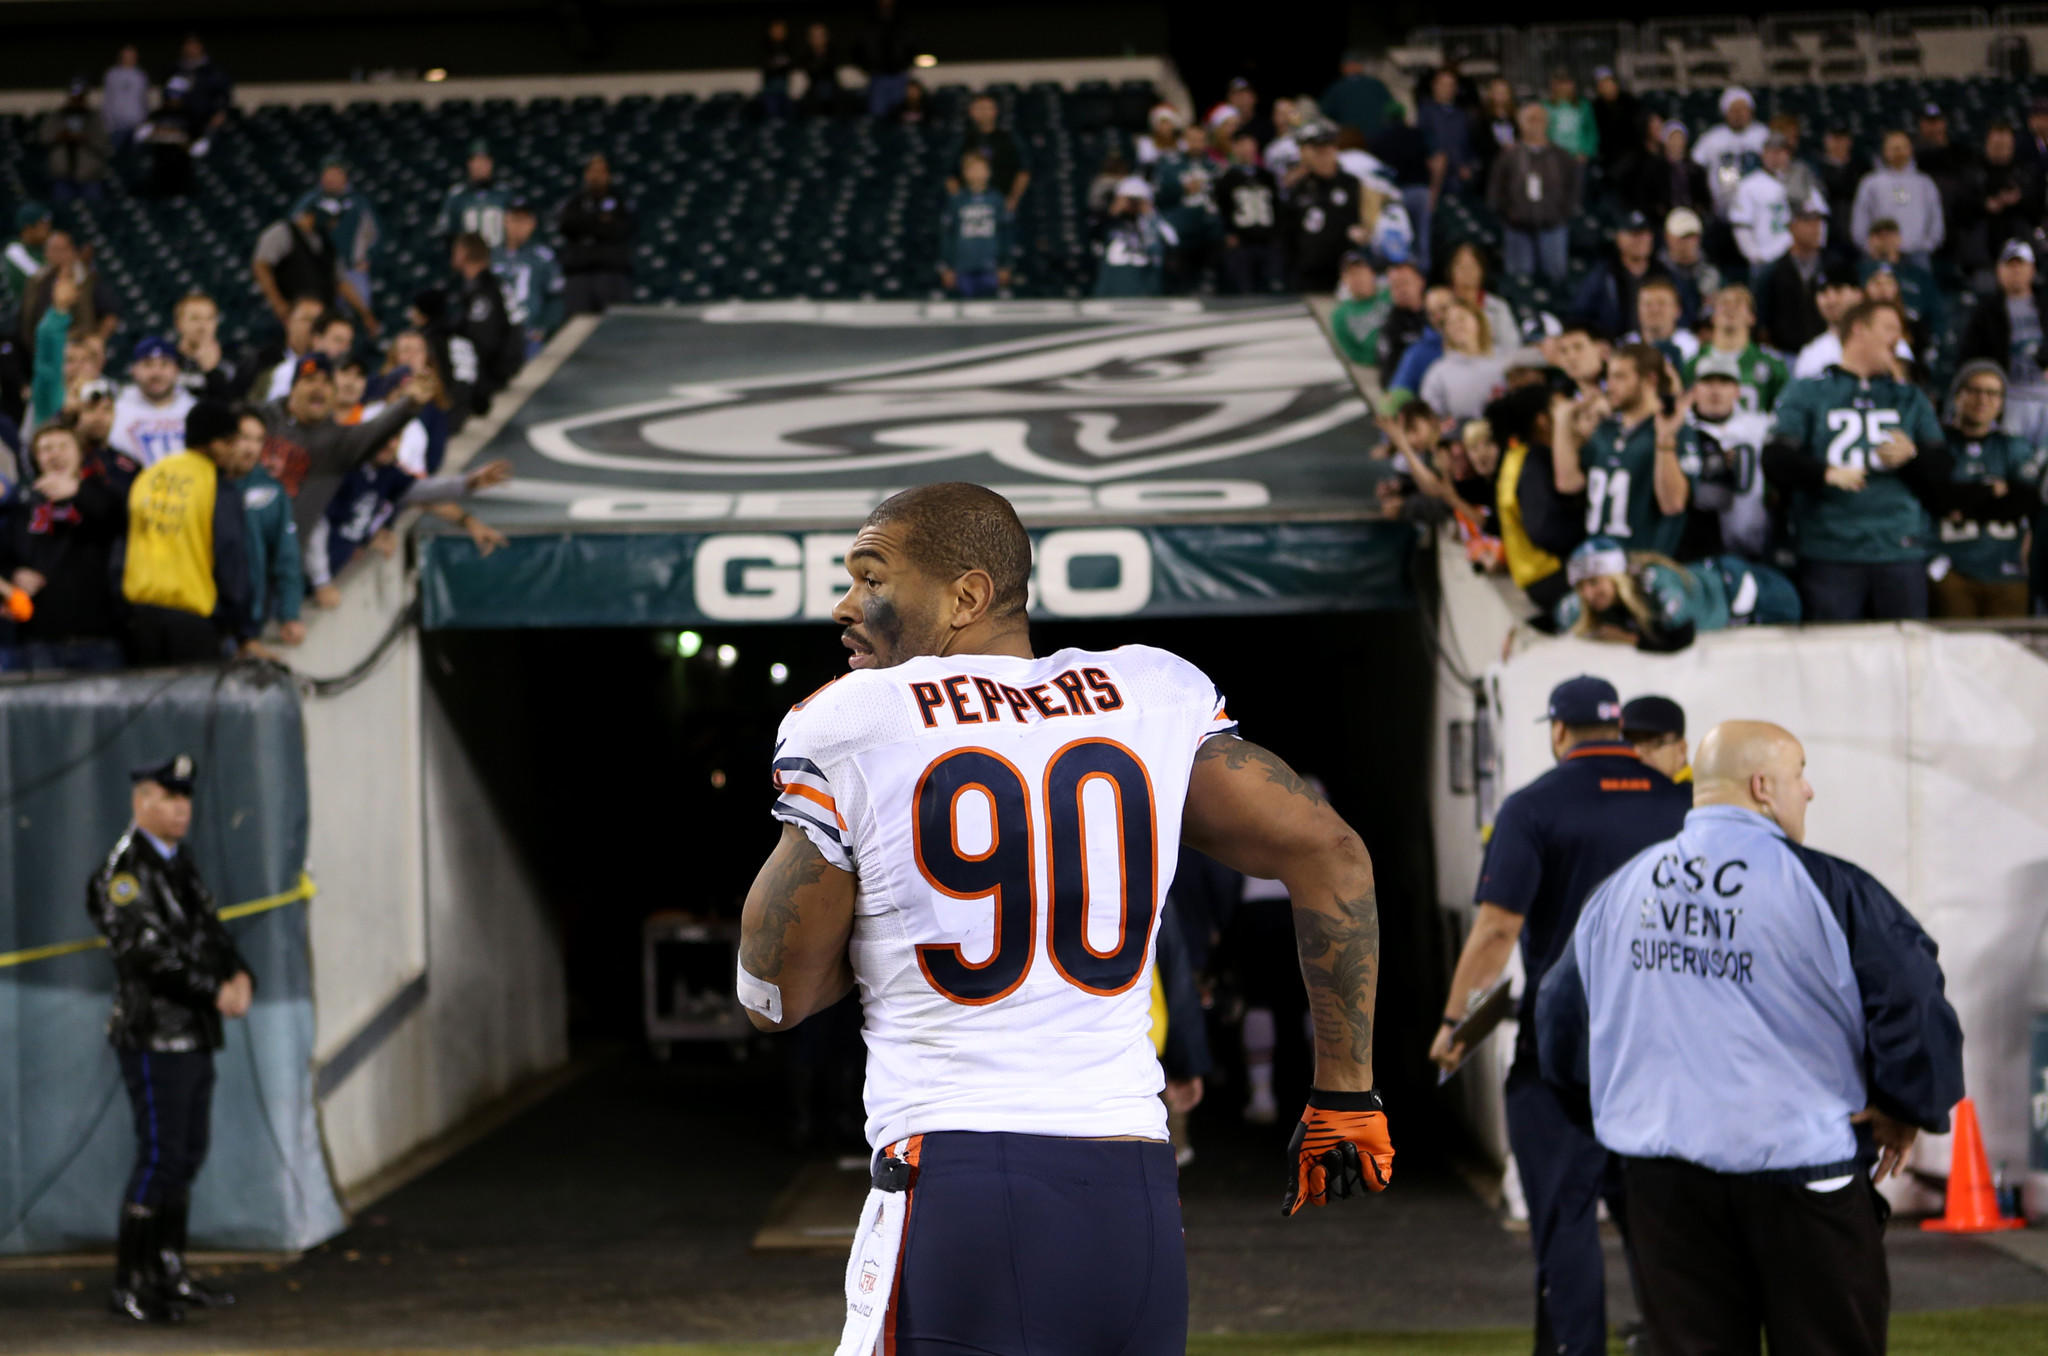 Bears defensive end Julius Peppers runs off the field after losing to the Eagles.